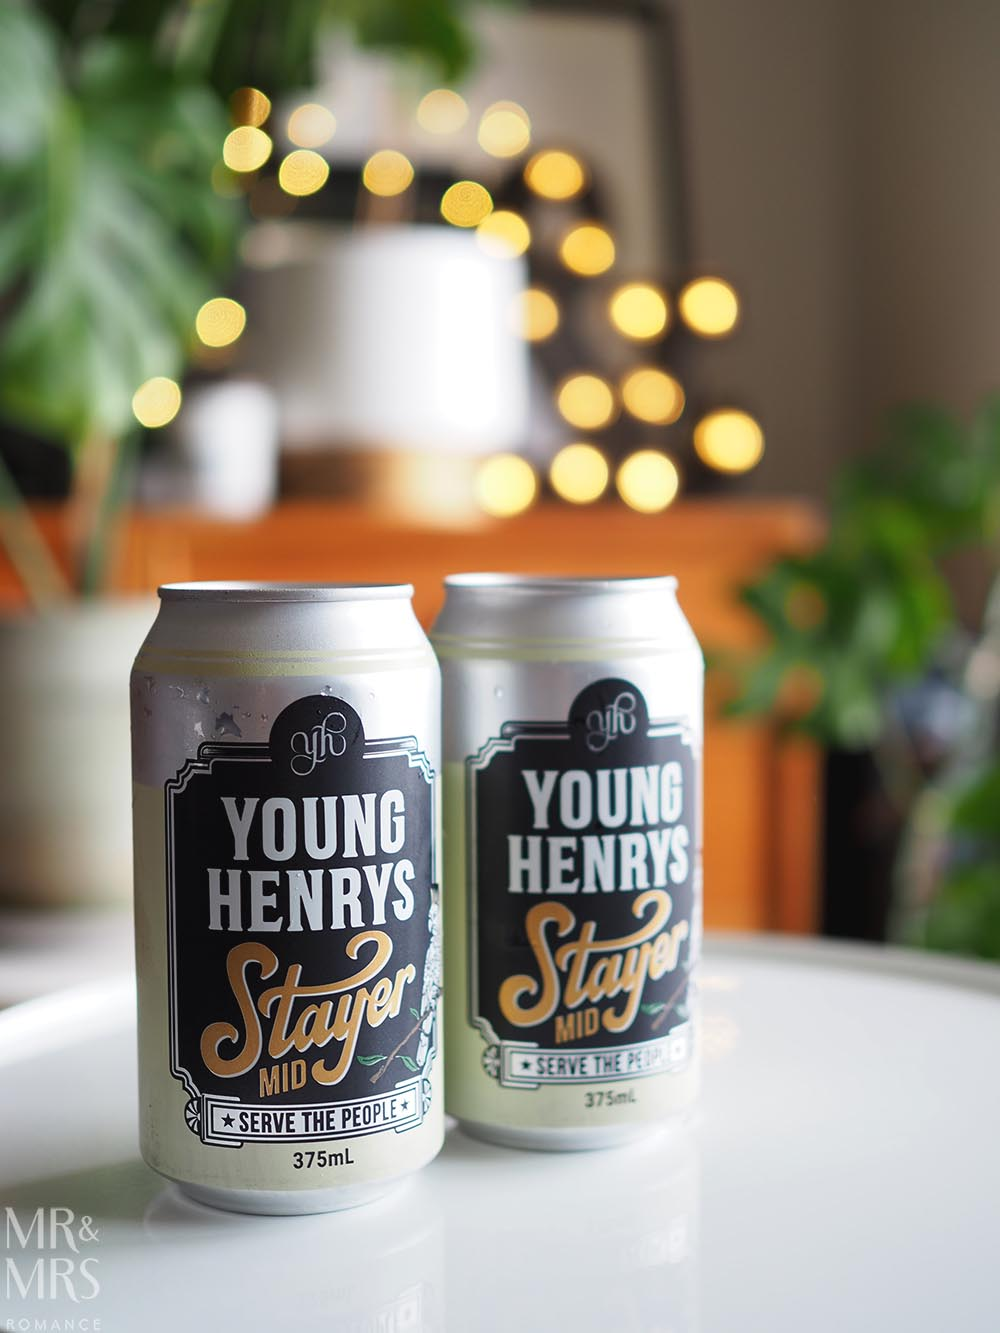 Young Henrys Stayer hopped lager mid-strength